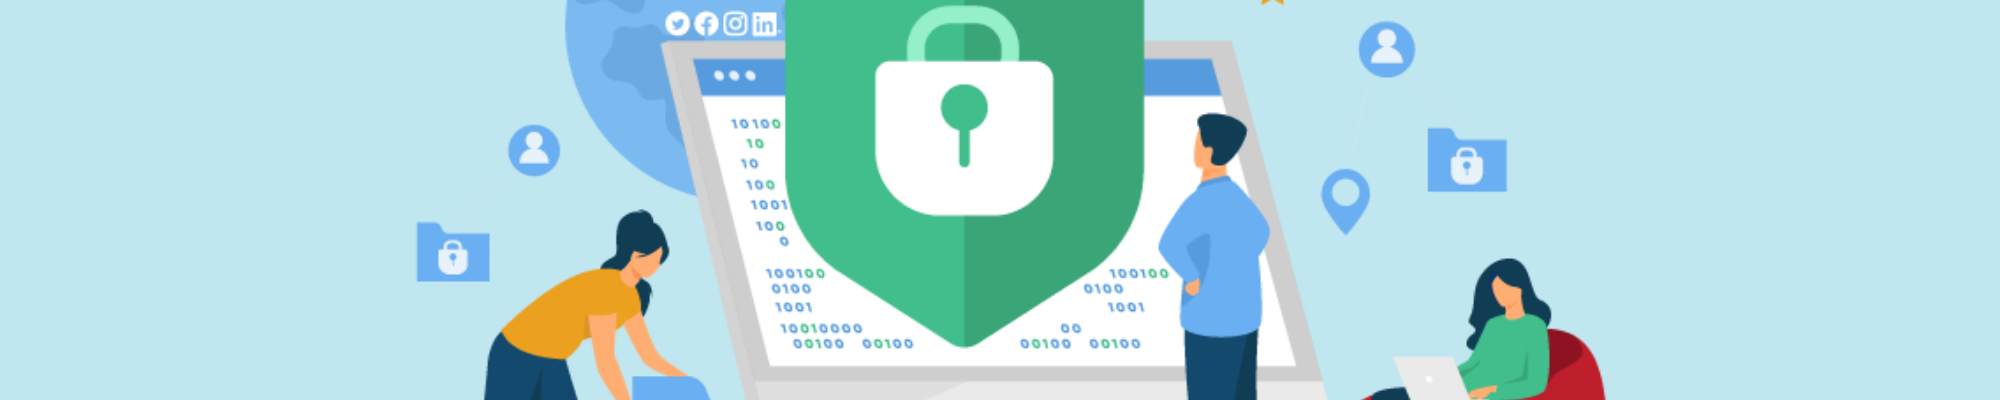 Making sure your business is social media secure